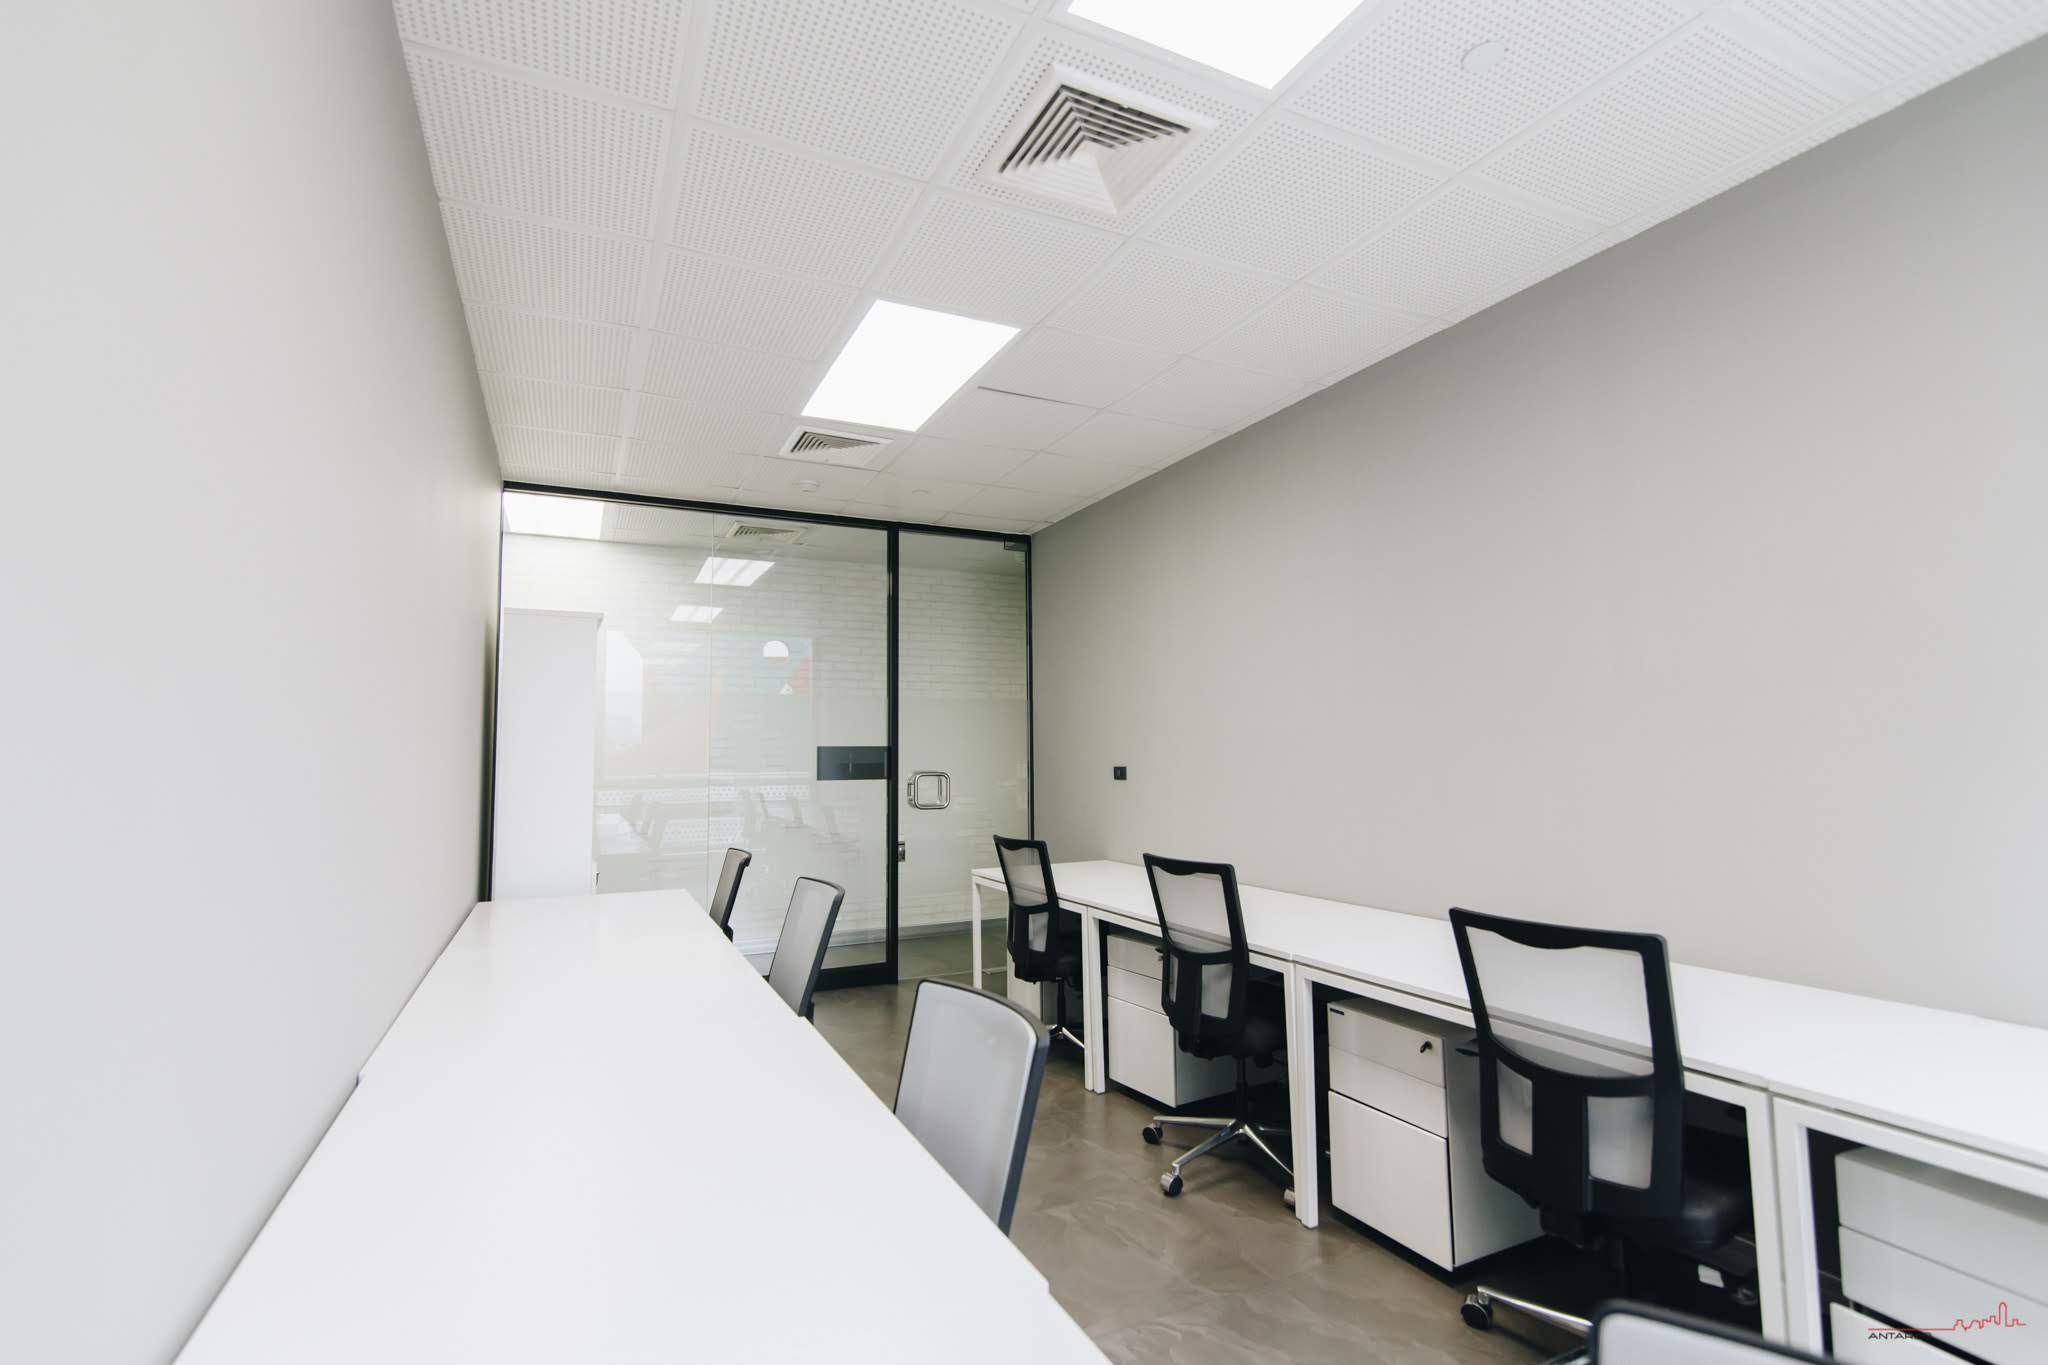 7-person-window-office